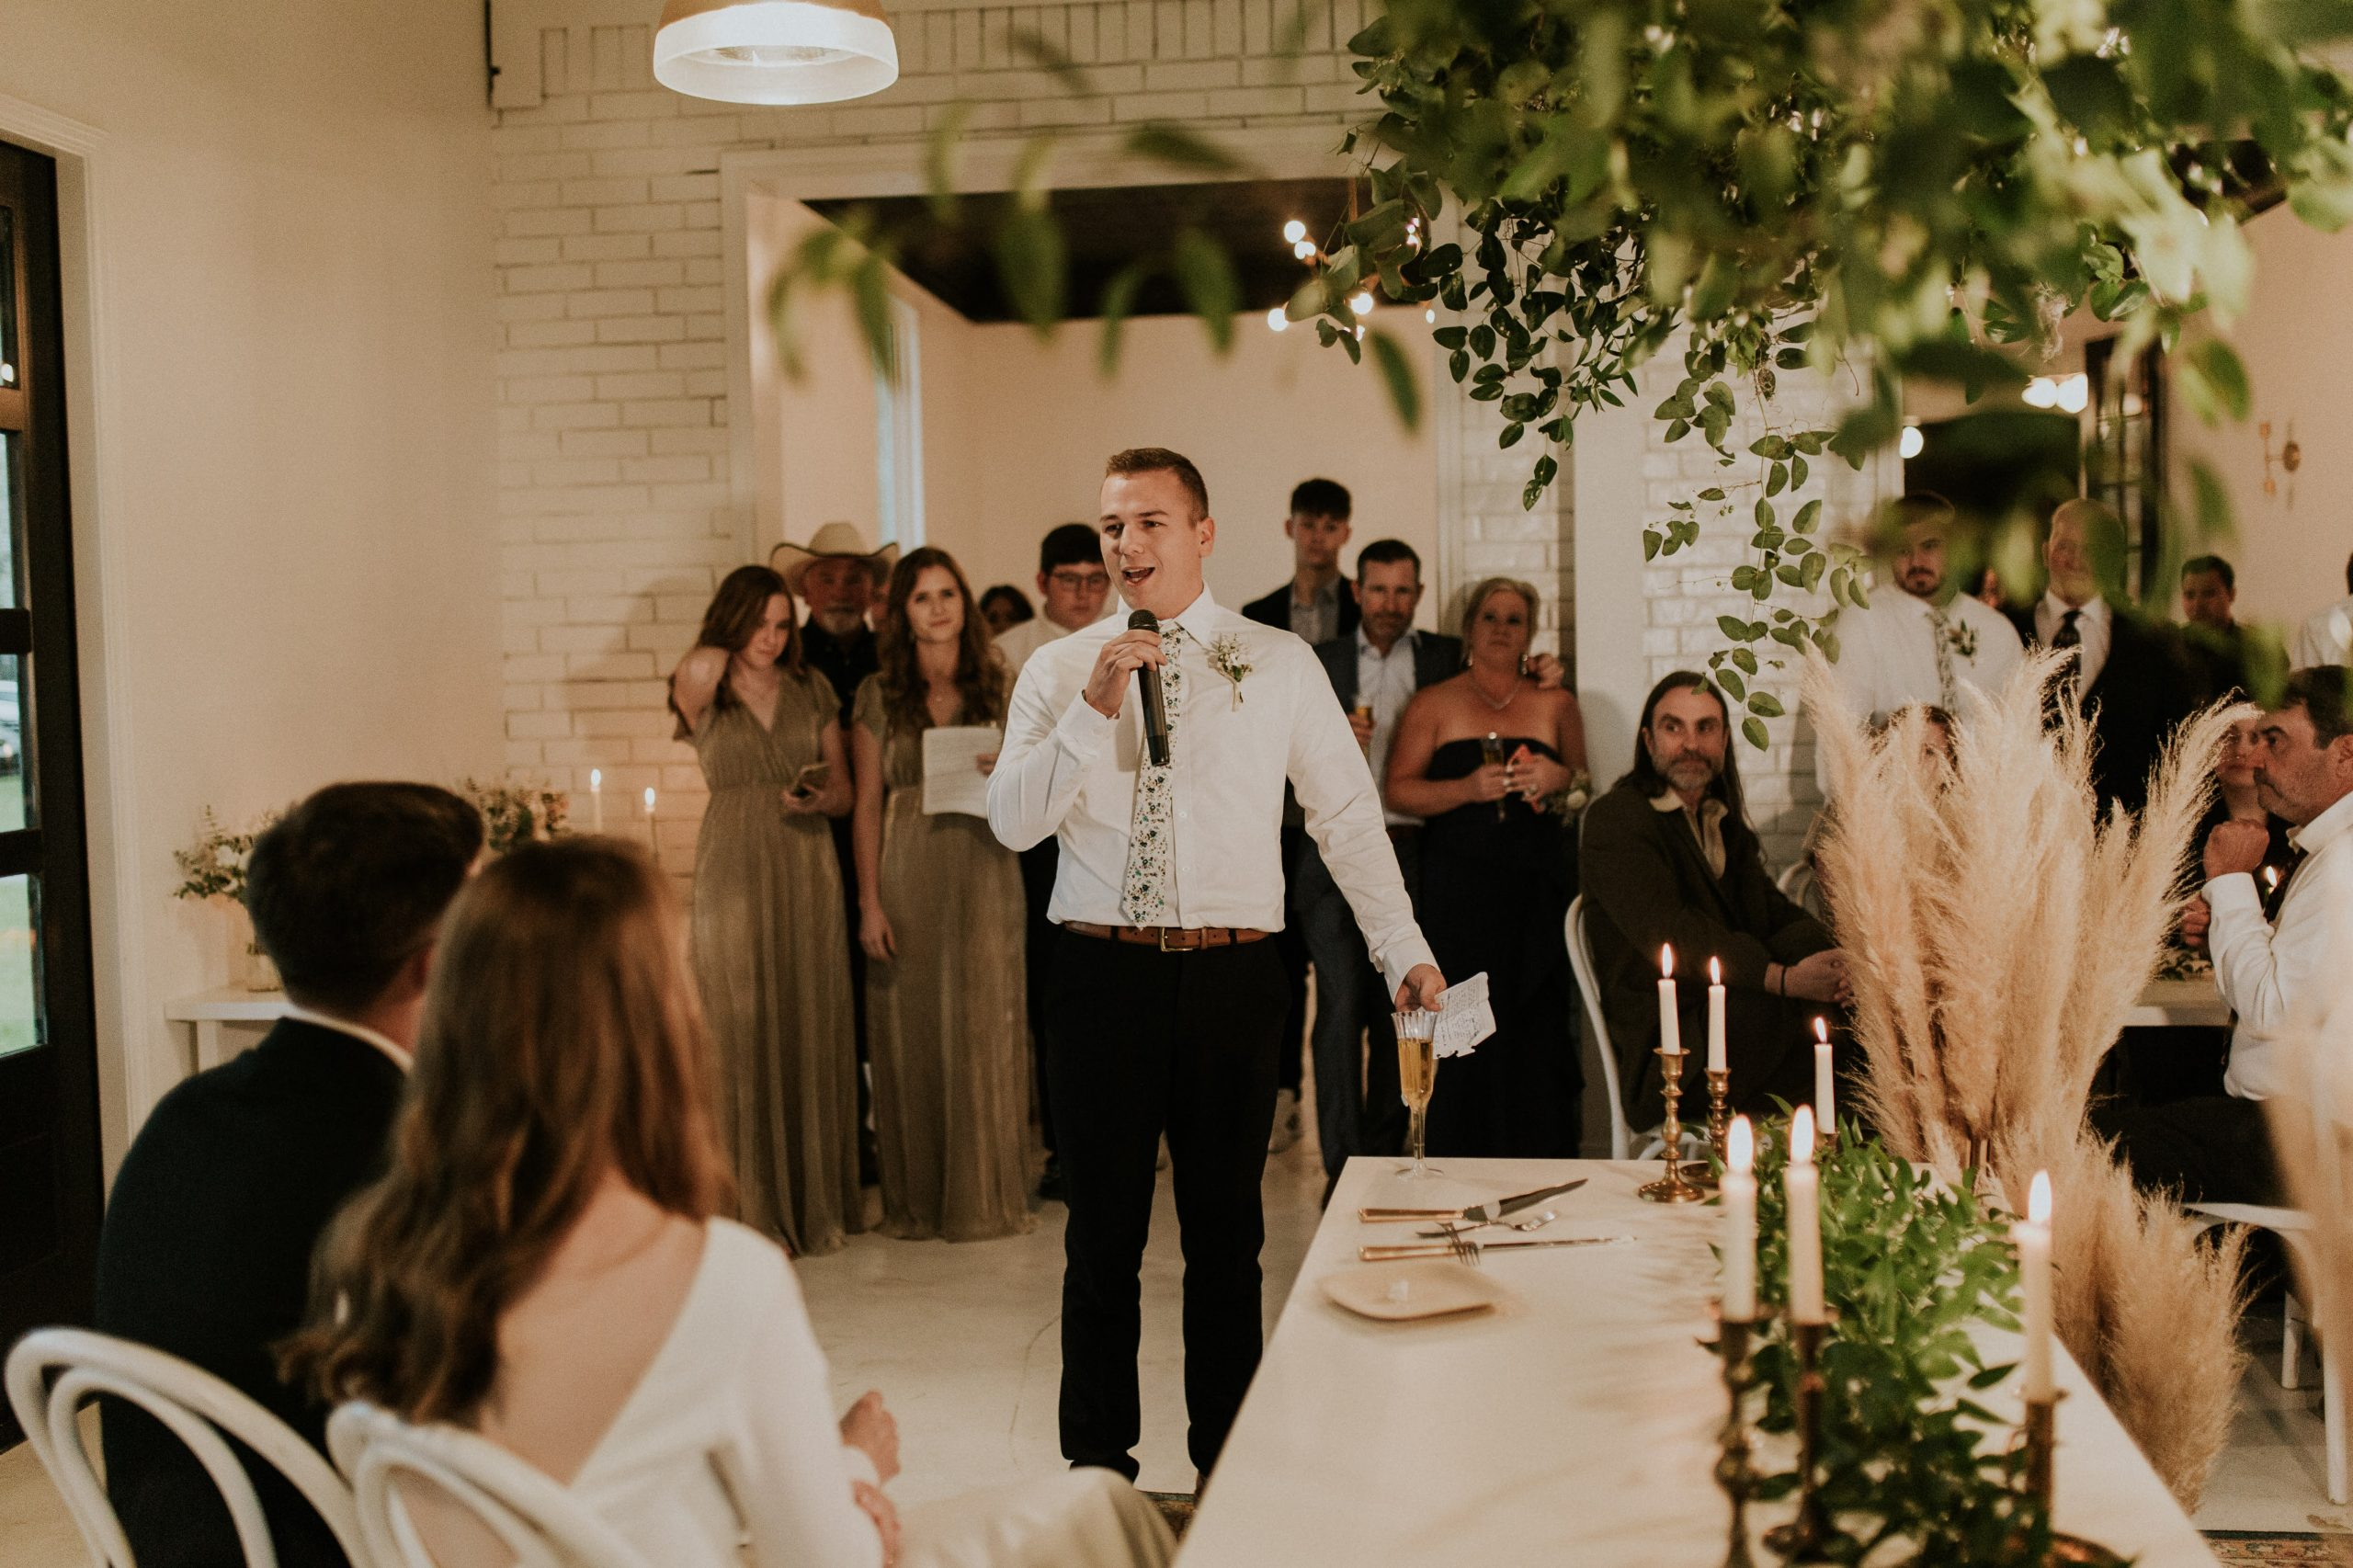 7 TIPS FOR GIVING THE BEST WEDDING TOAST EVER